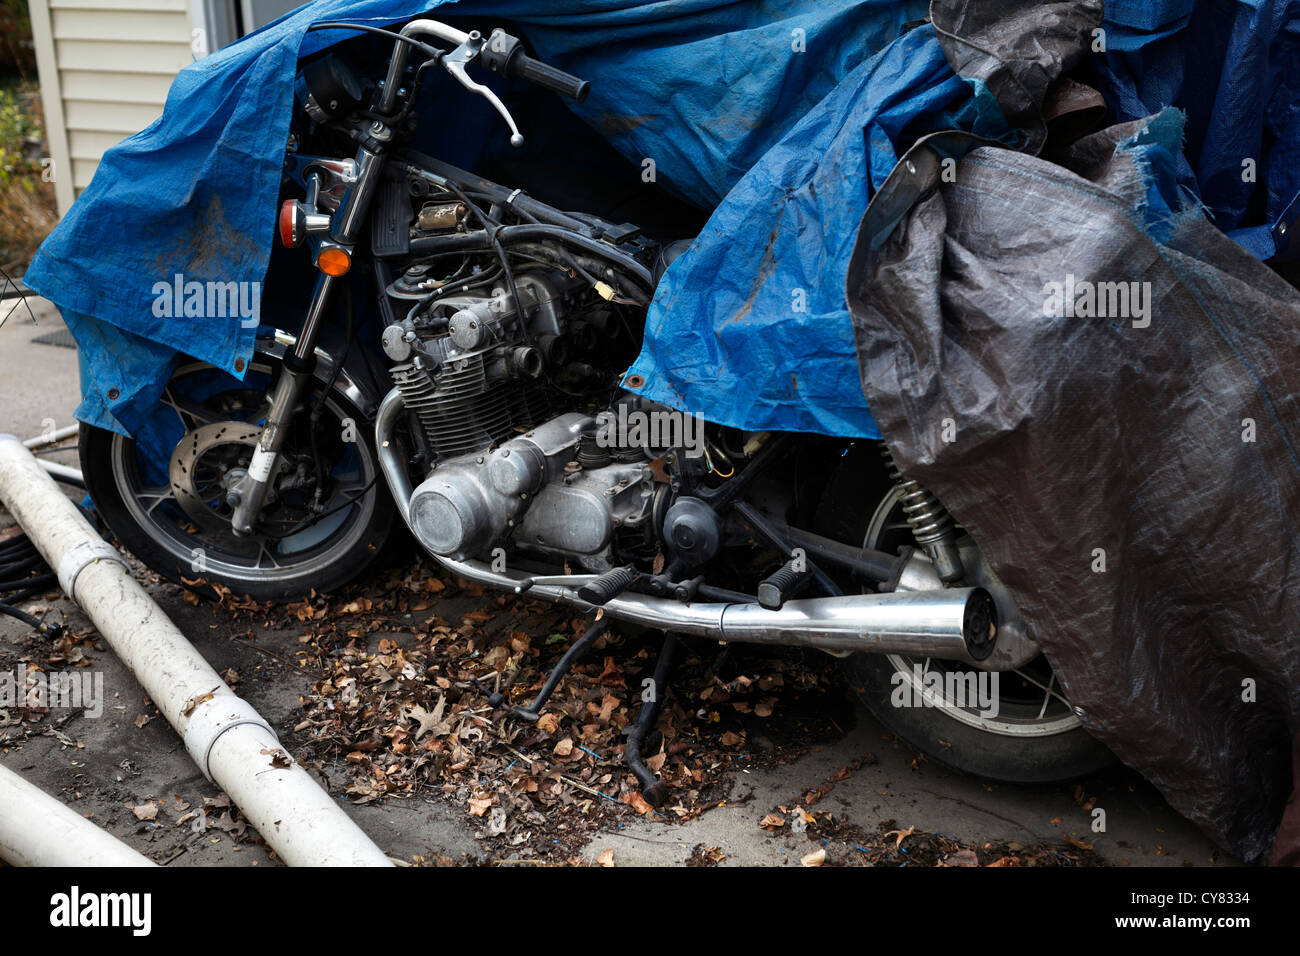 Incomplete motorcycle under blue tarp. - Stock Image